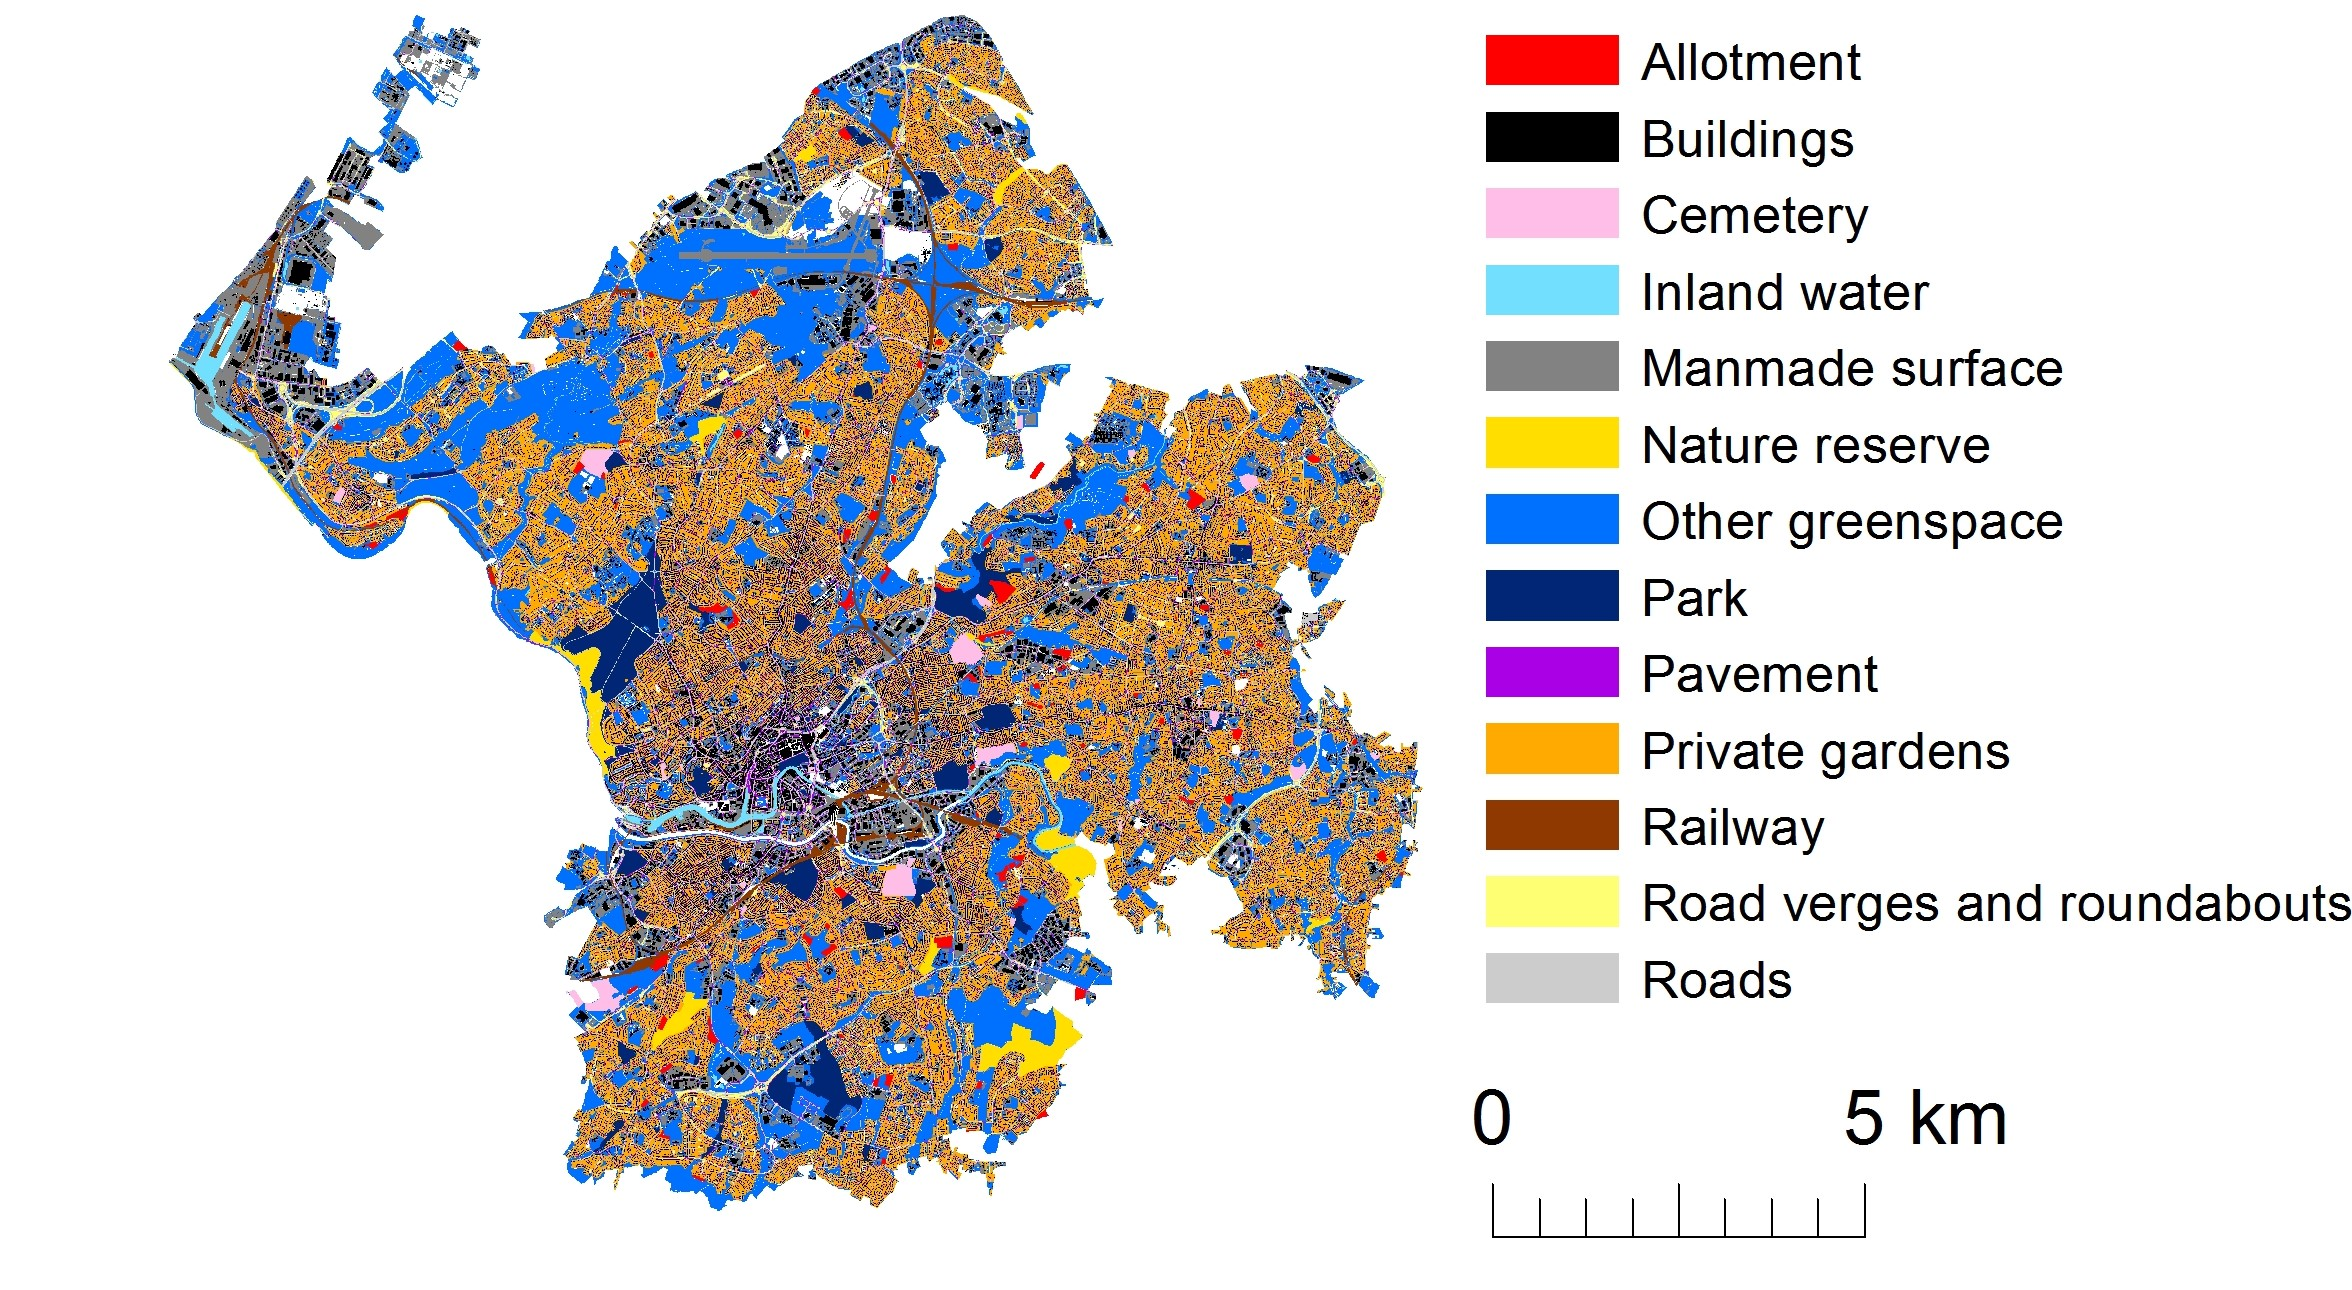 Land use map for Bristol